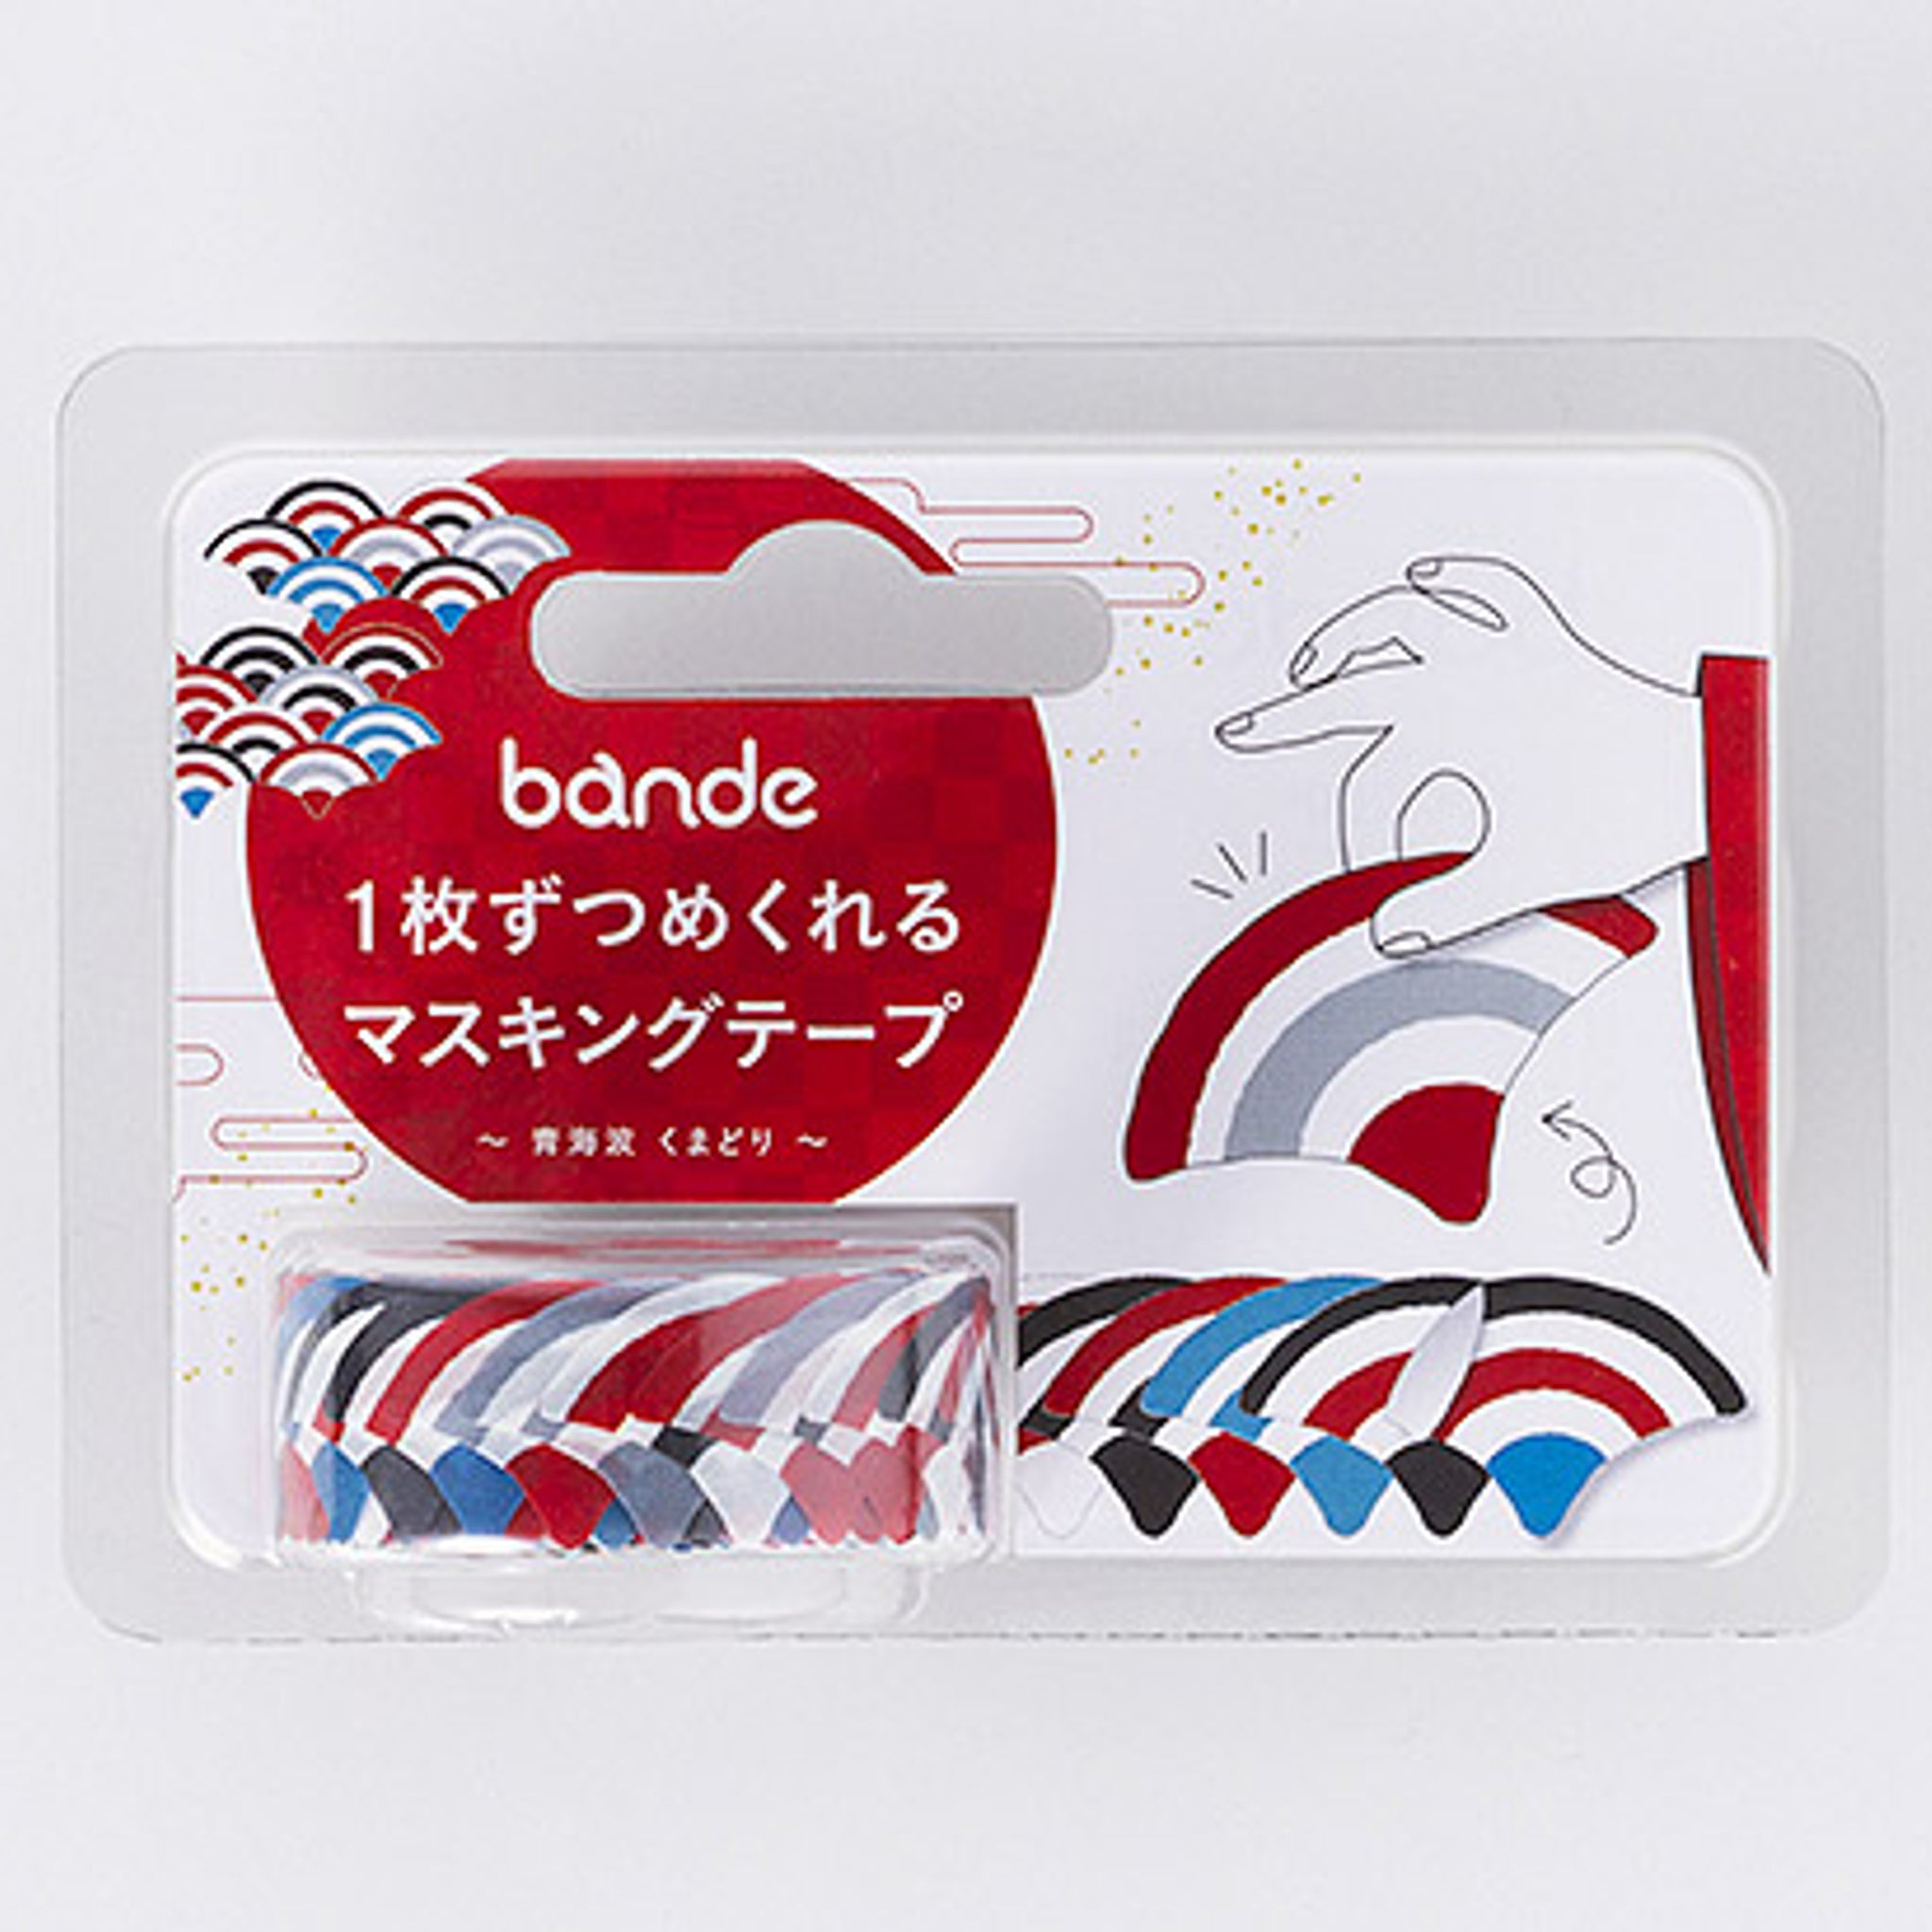 Bande Seigaiha Kumadori Washi Roll Sticker